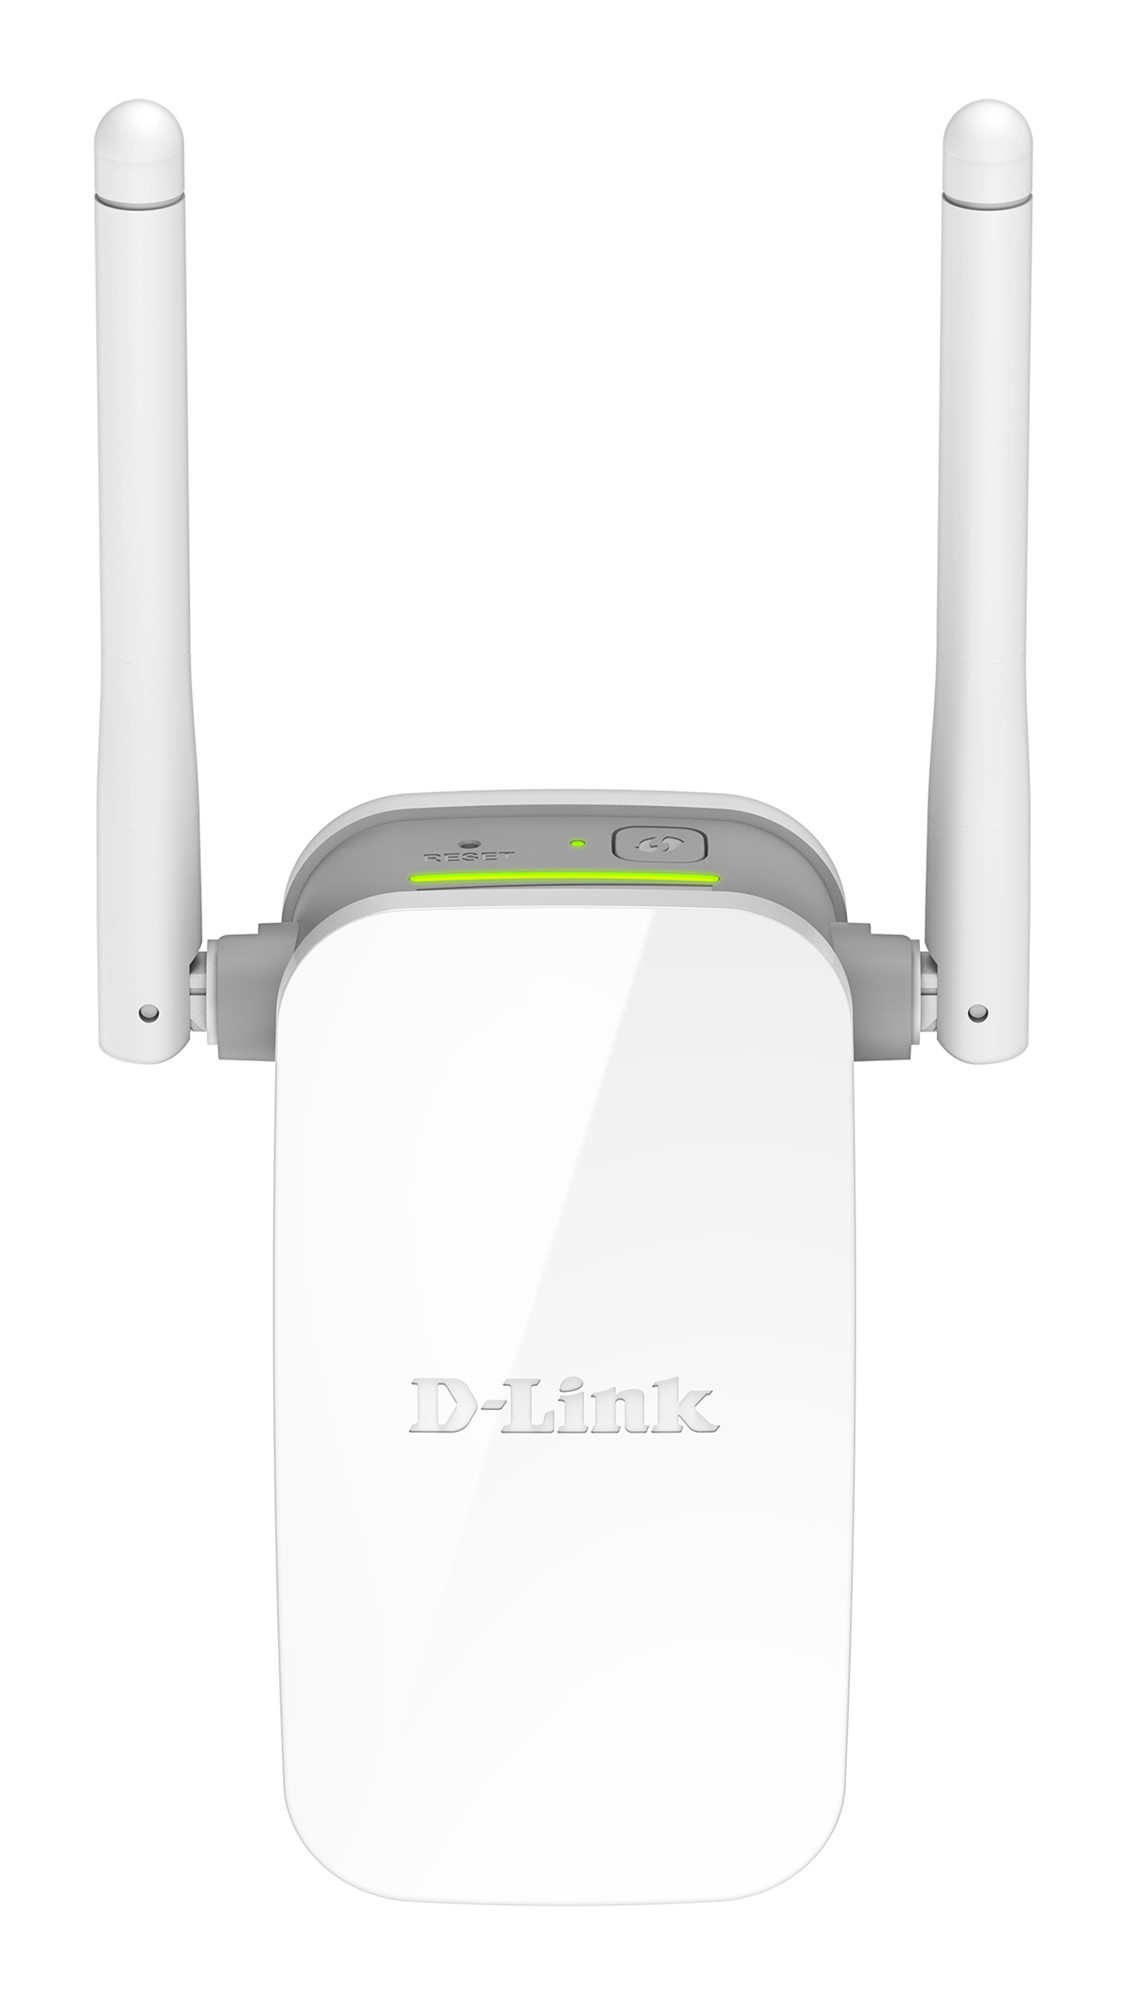 D-LINK DAP-1325 NETWORK REPEATER WHITE 10,100MBIT/S